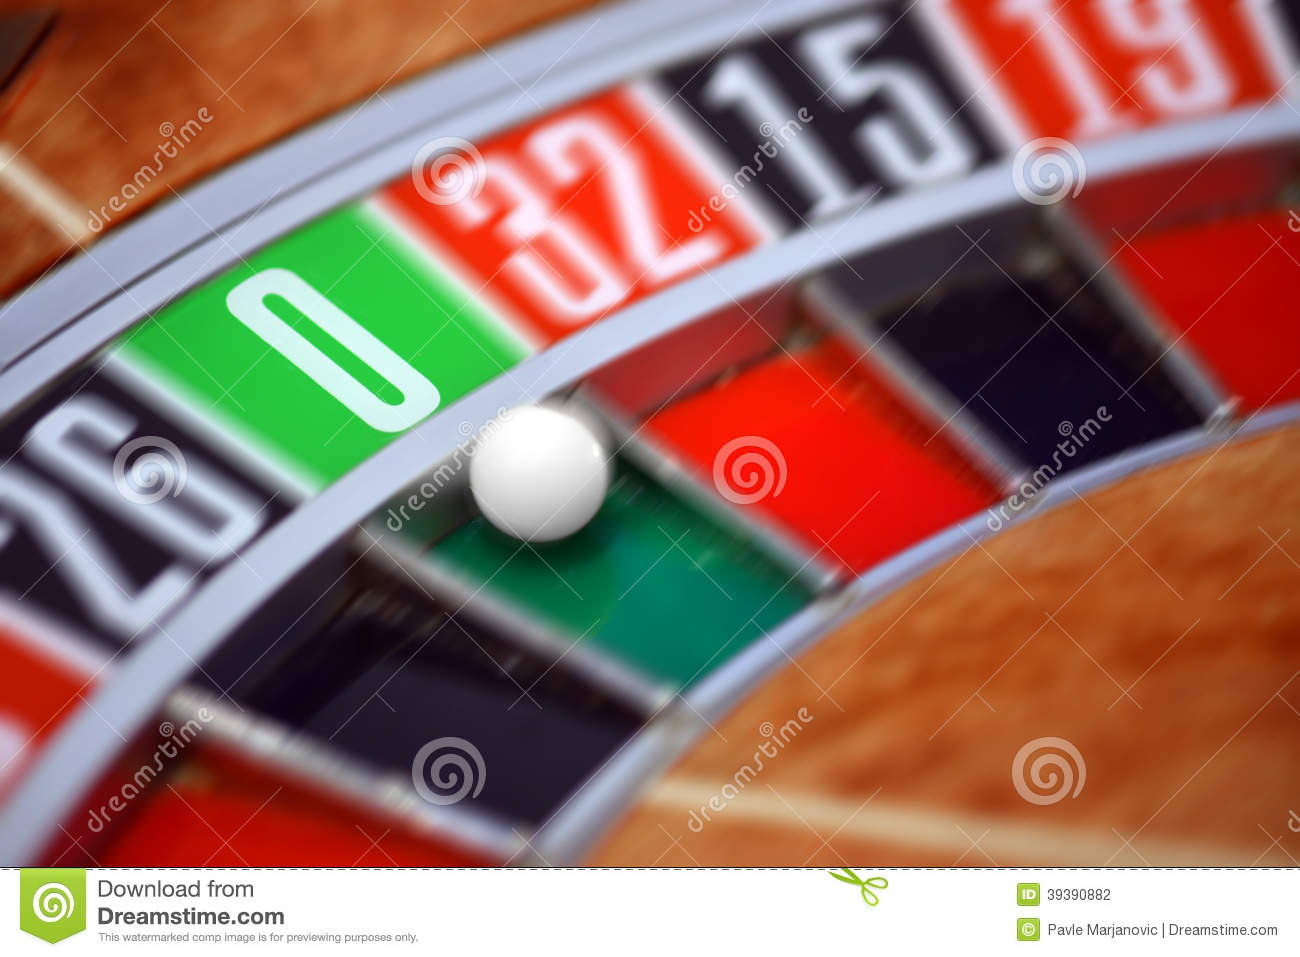 Illegal roulette bets